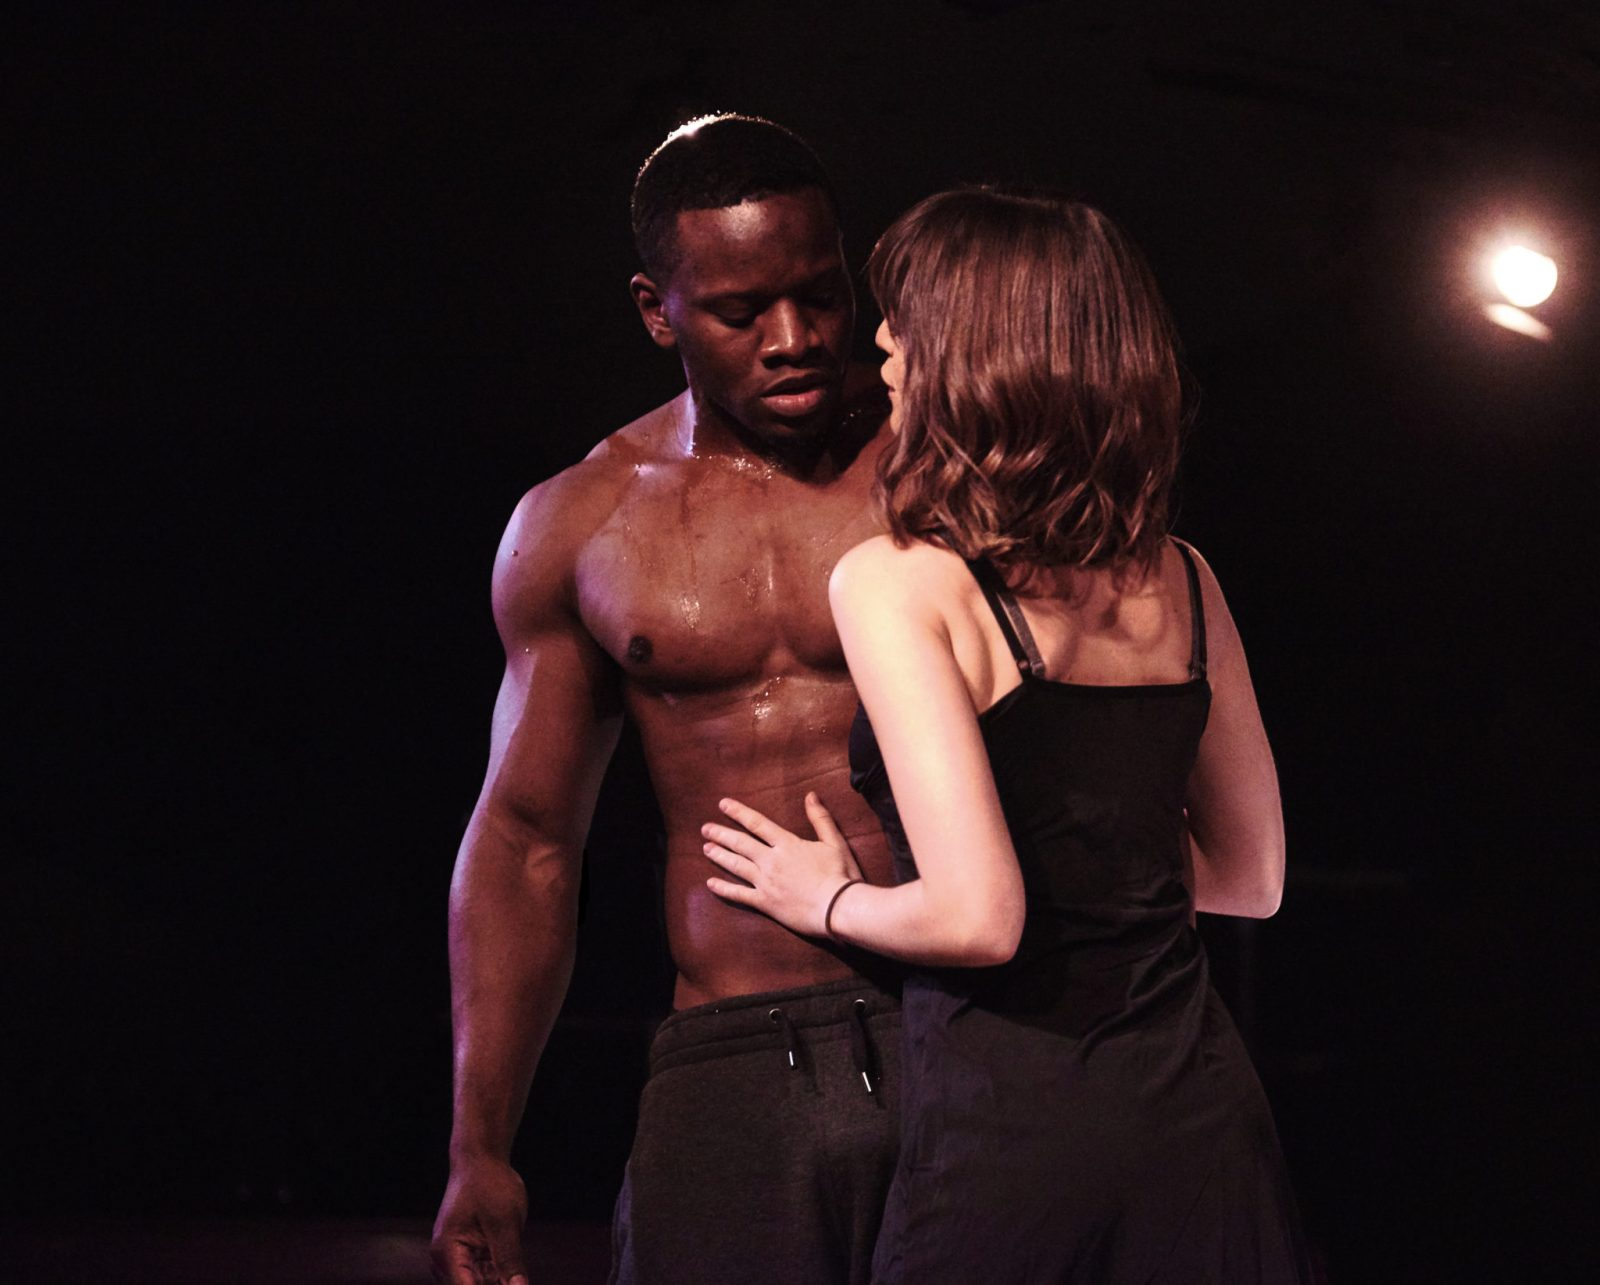 La Ronde, erotic art London, Bunker Theatre